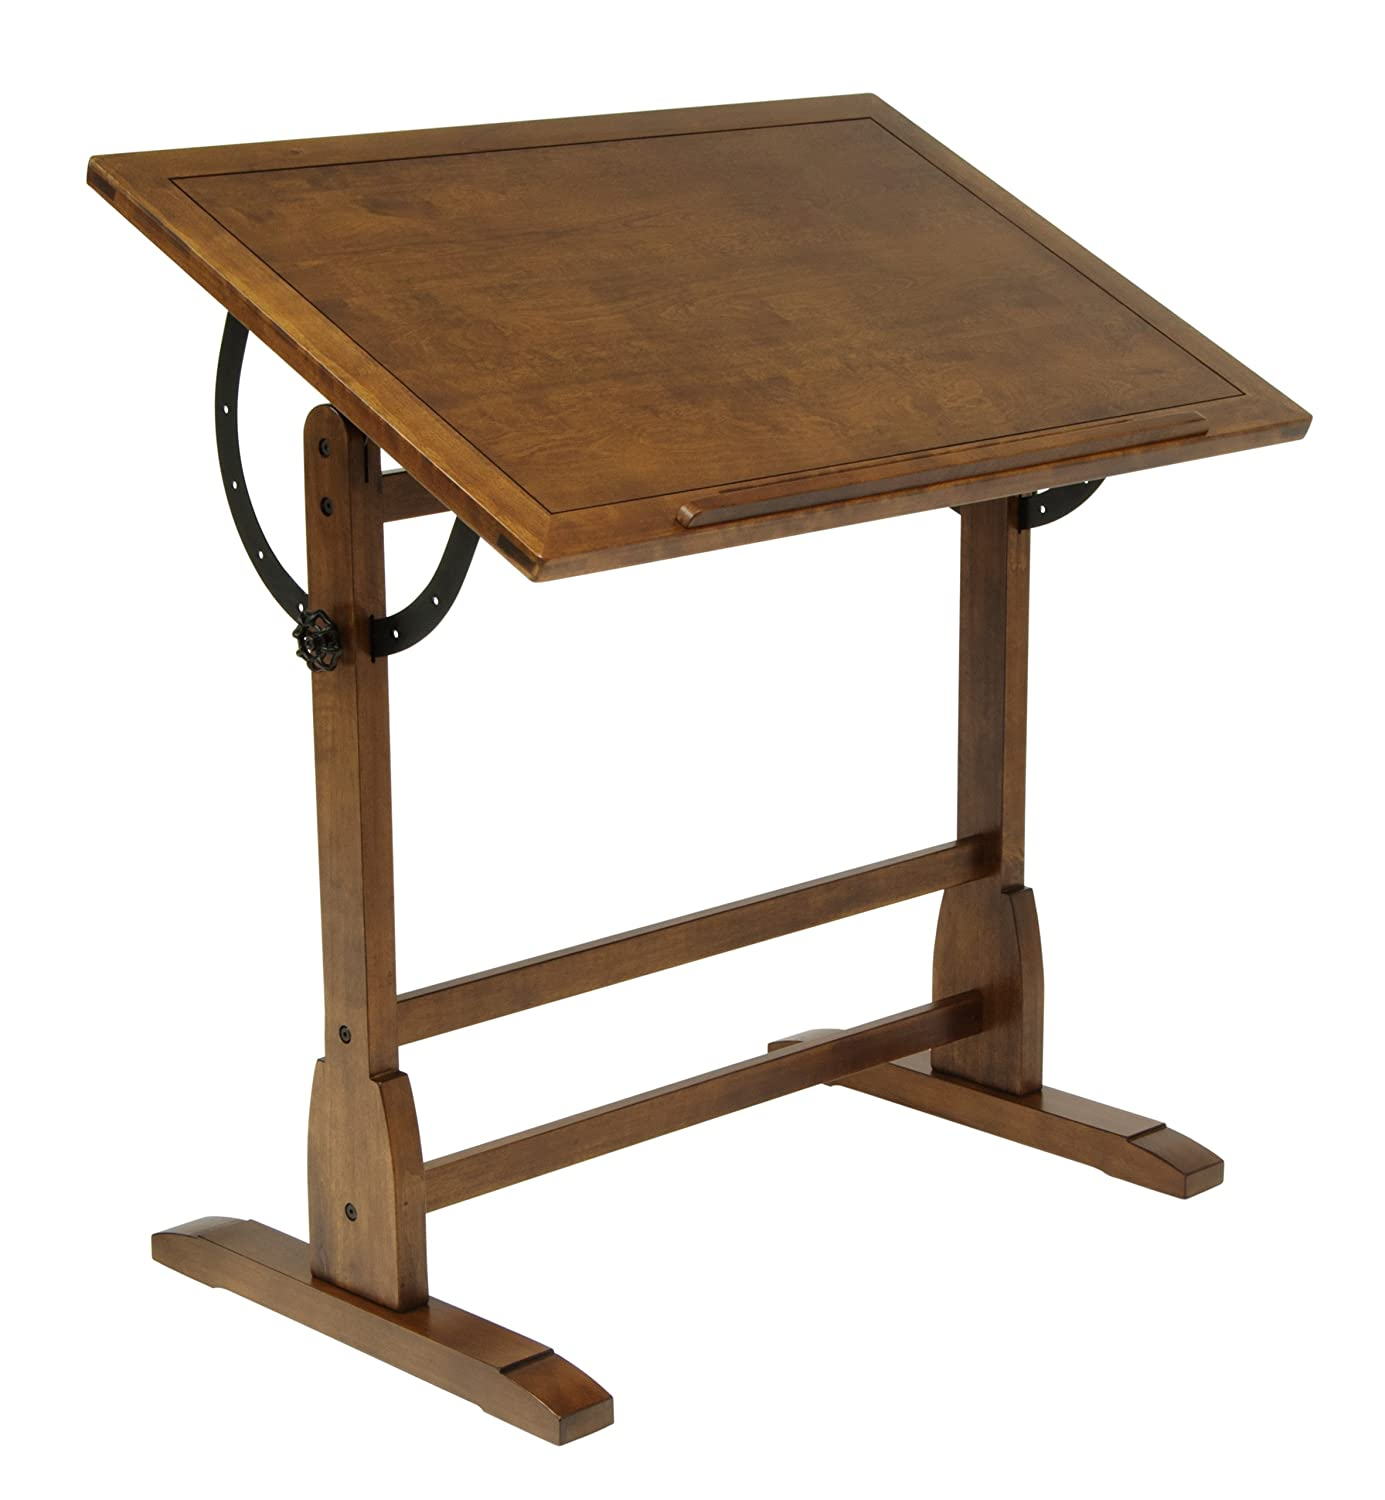 dp crafts table americana x sewing ii oak light arts designs amazon studio com tables drafting